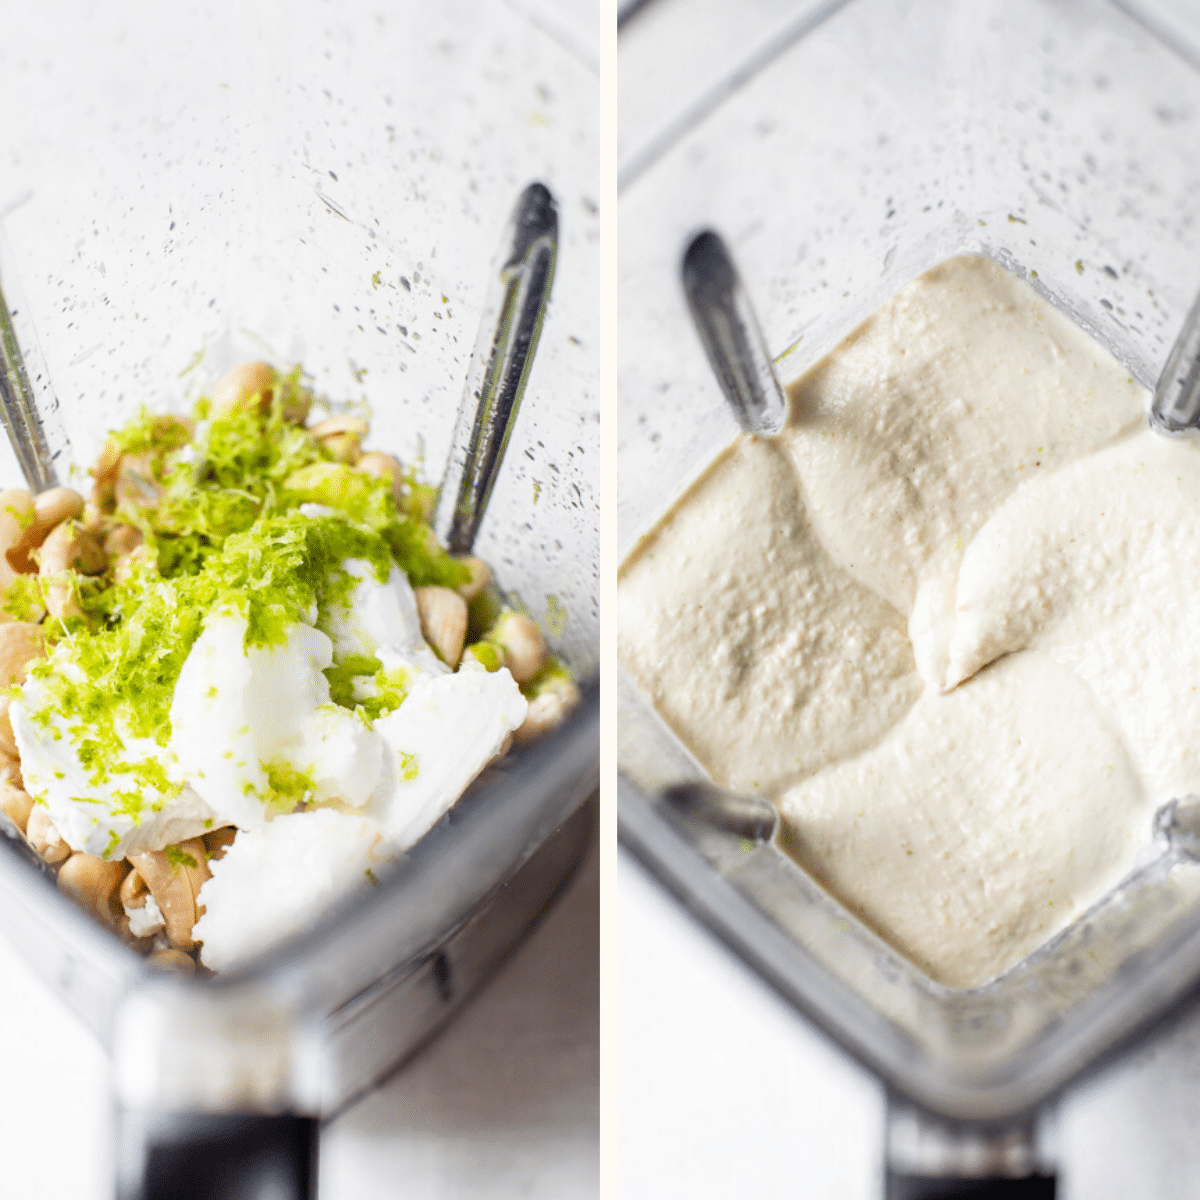 cashew cream in a blender